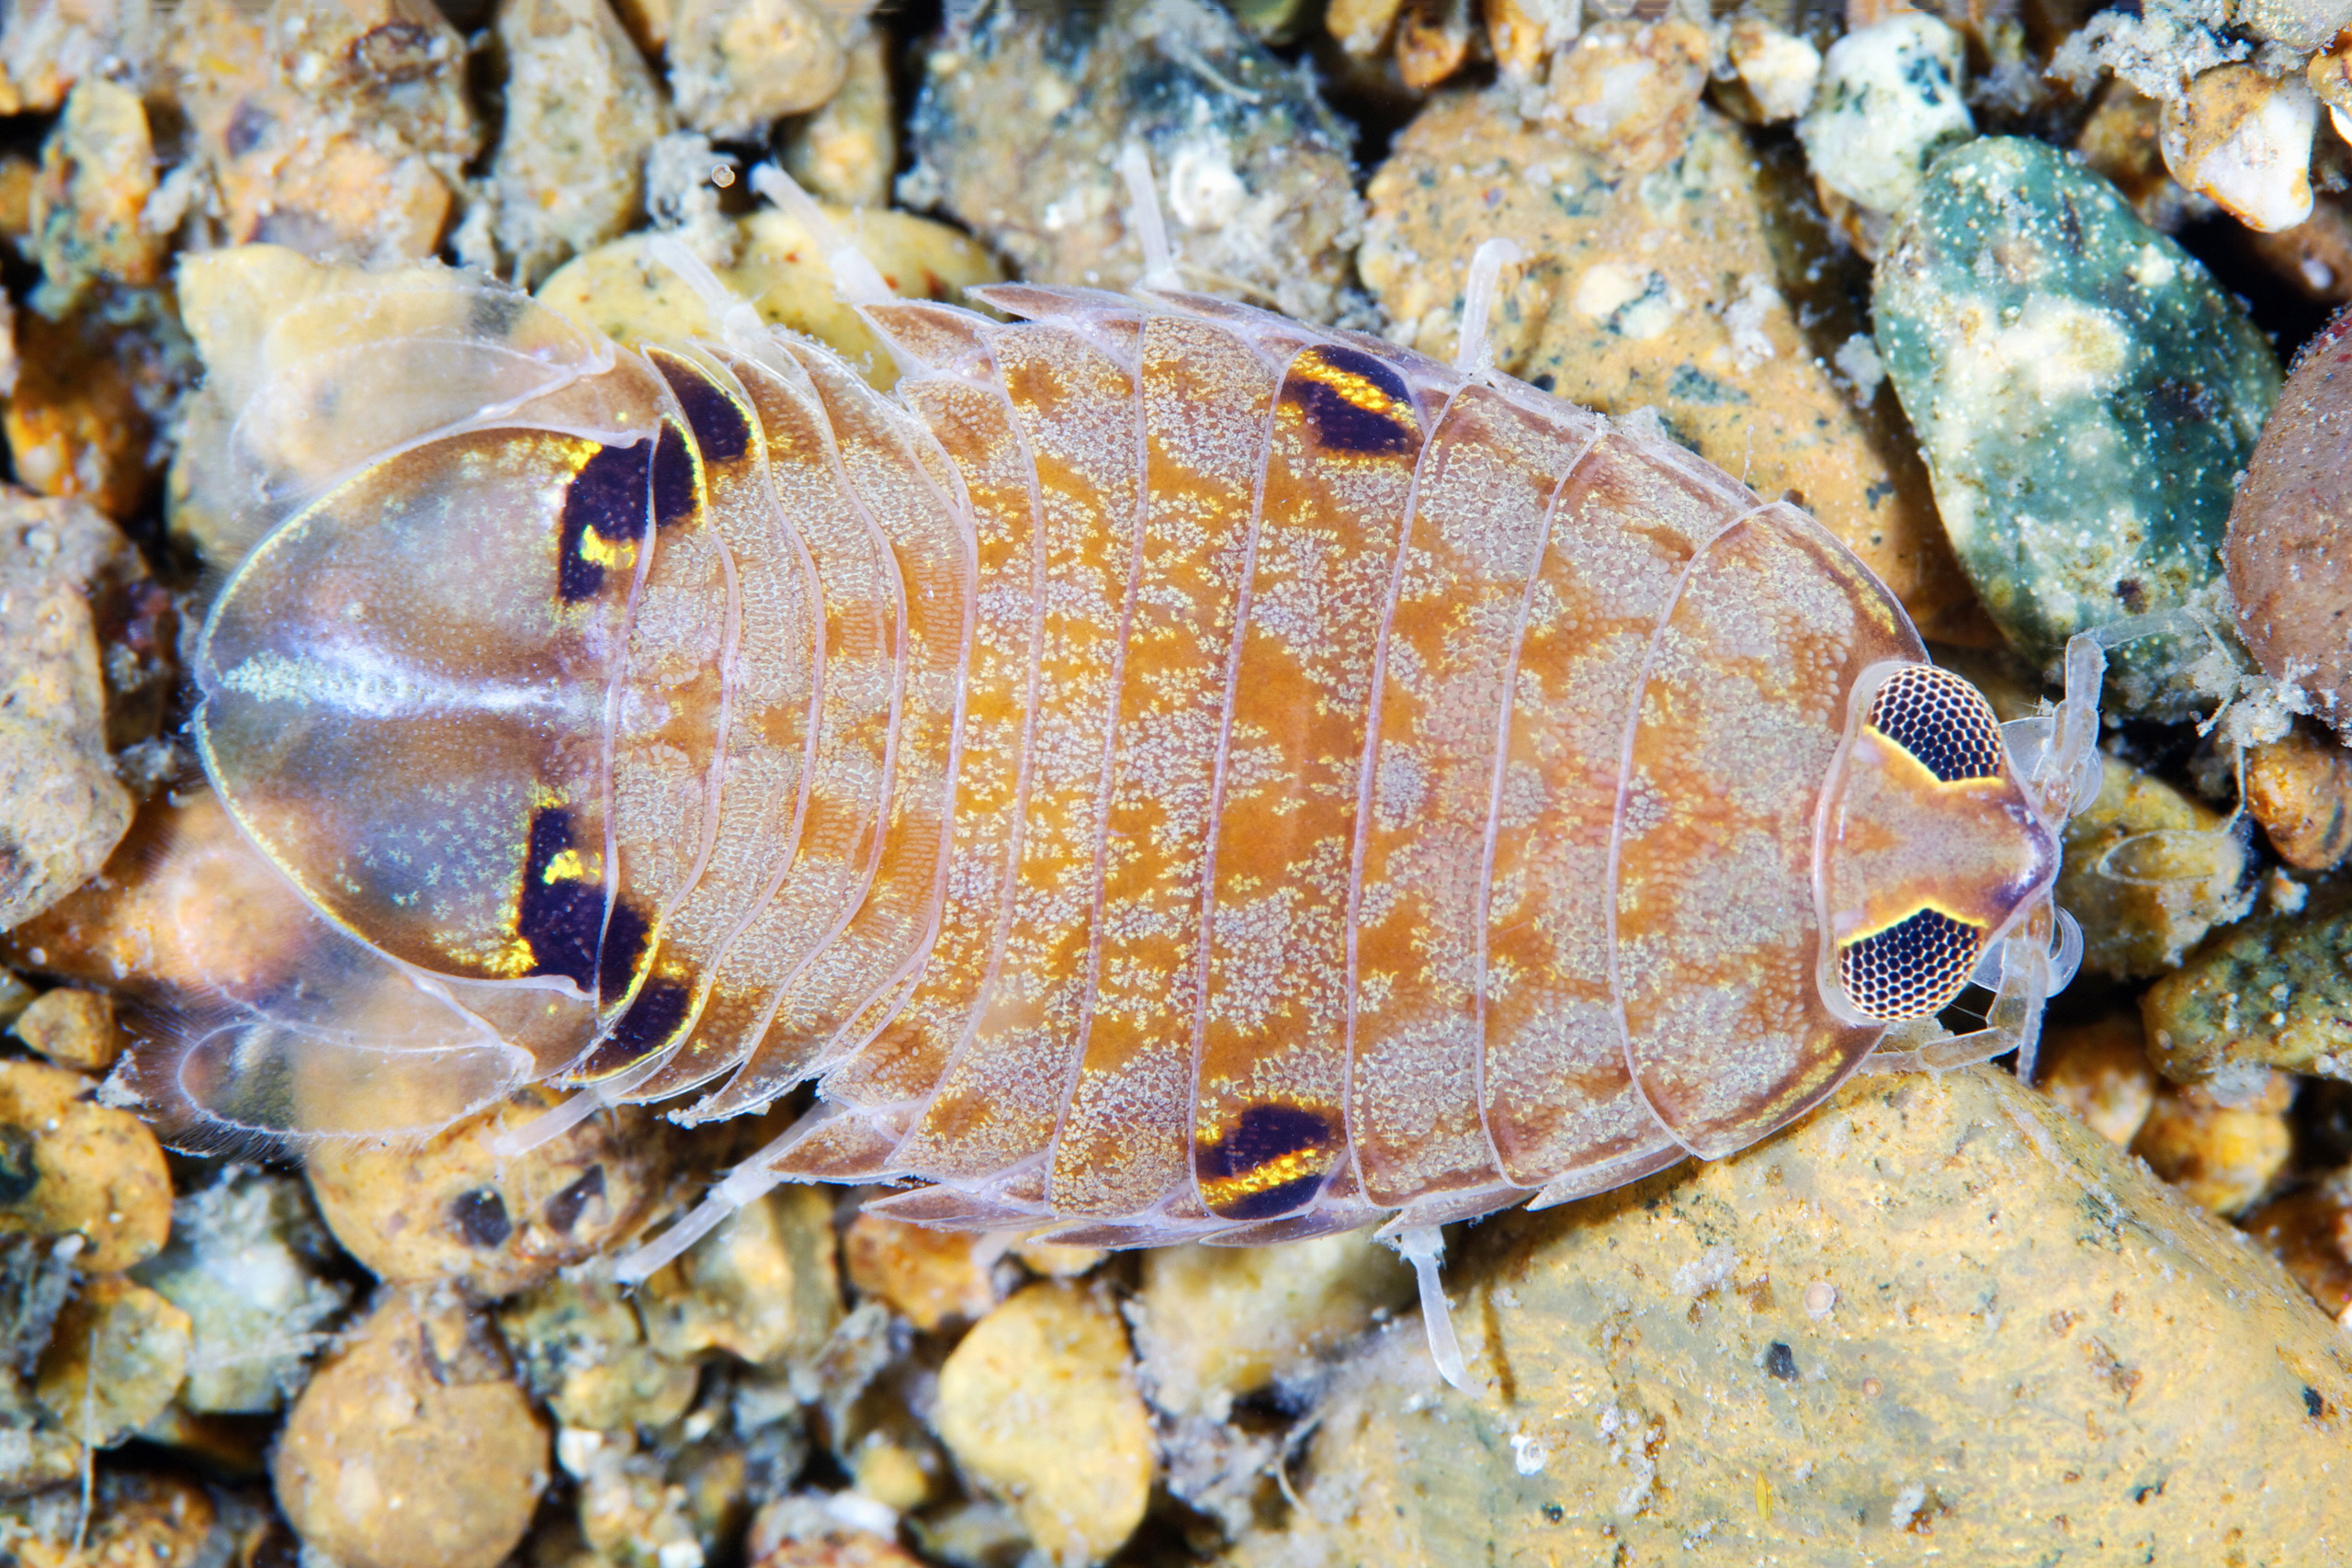 Crustacean – Isopod unidentified